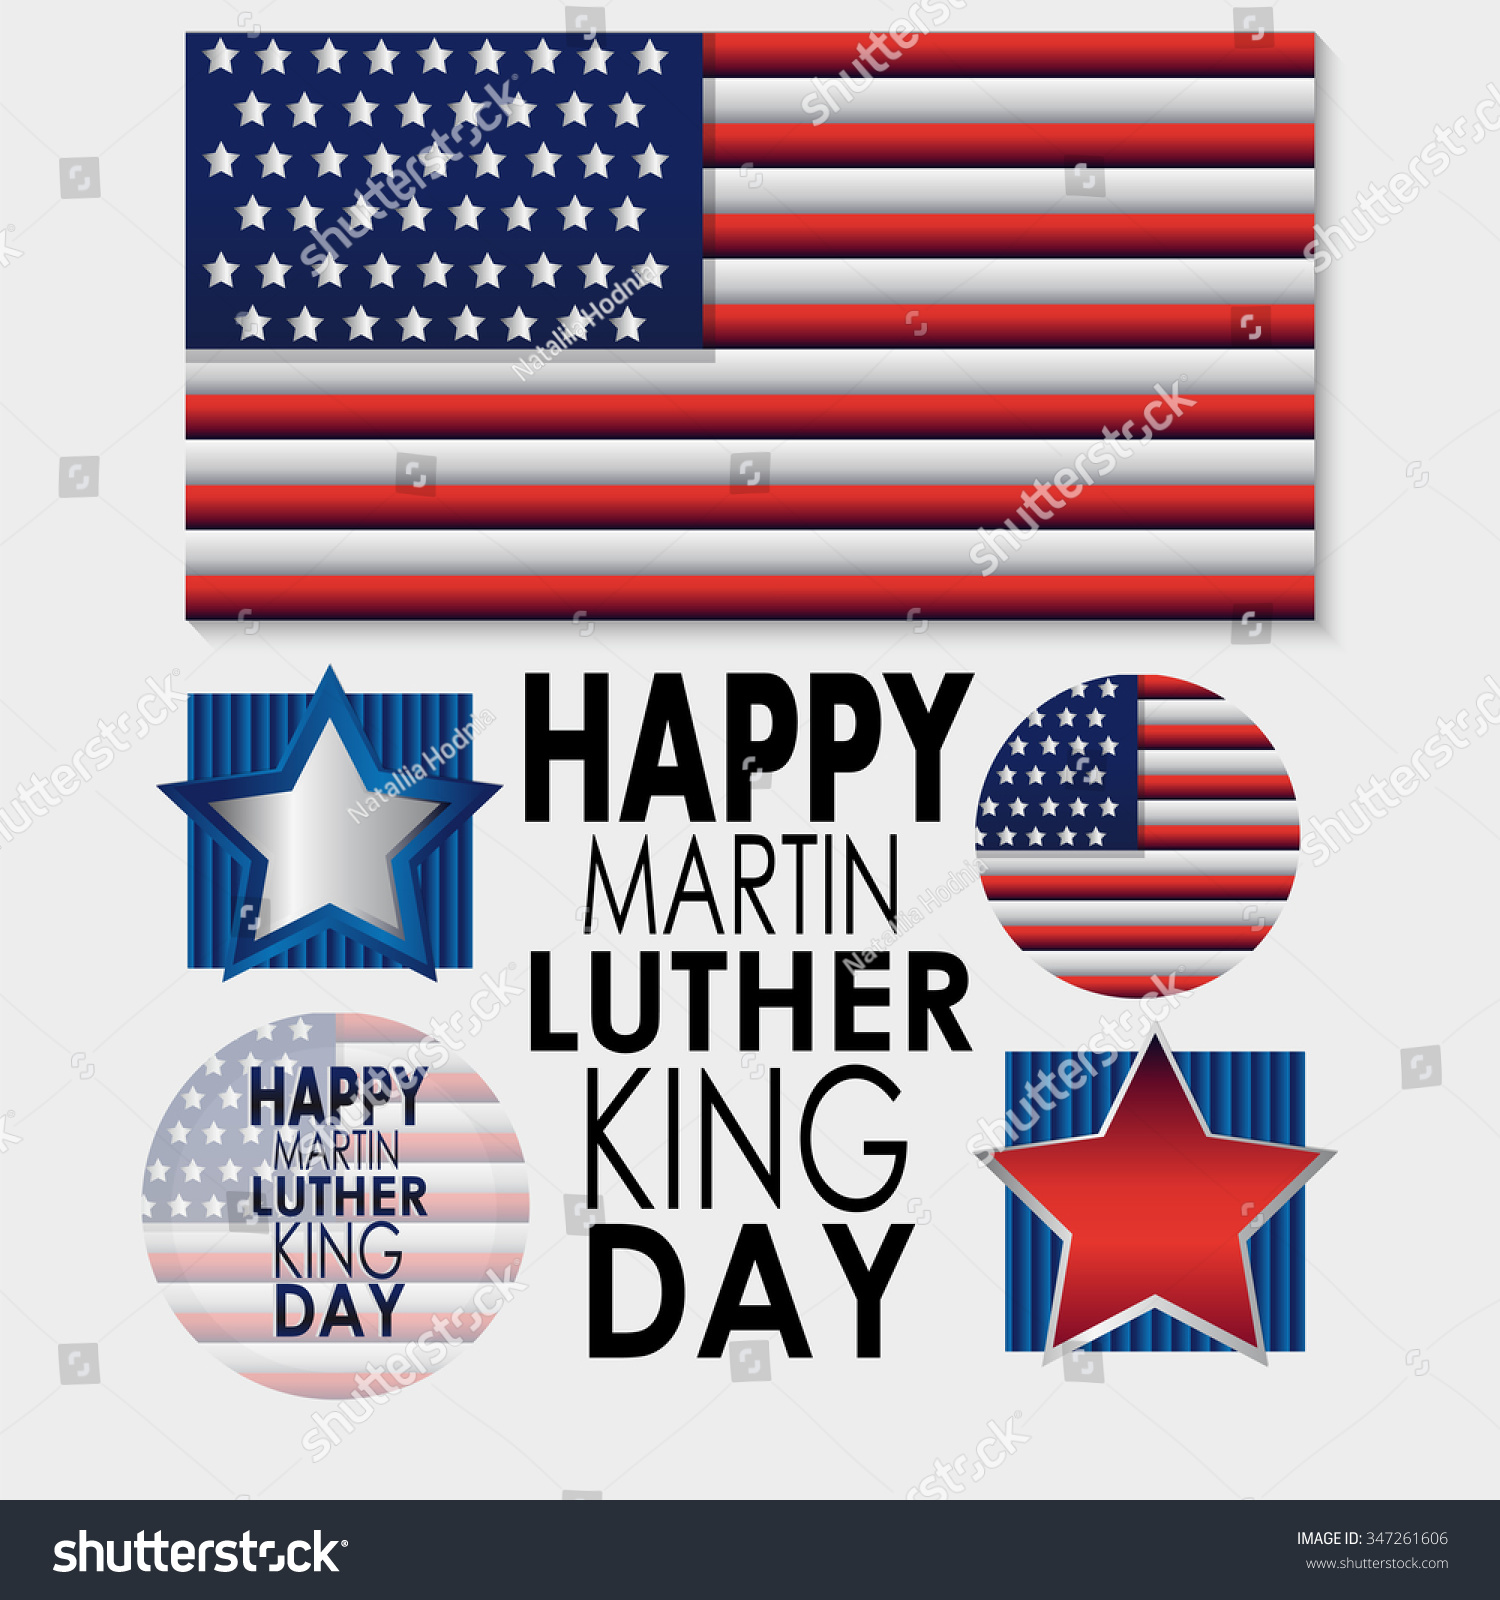 Happy Martin Luther King Day American Flag Stock Vector Royalty